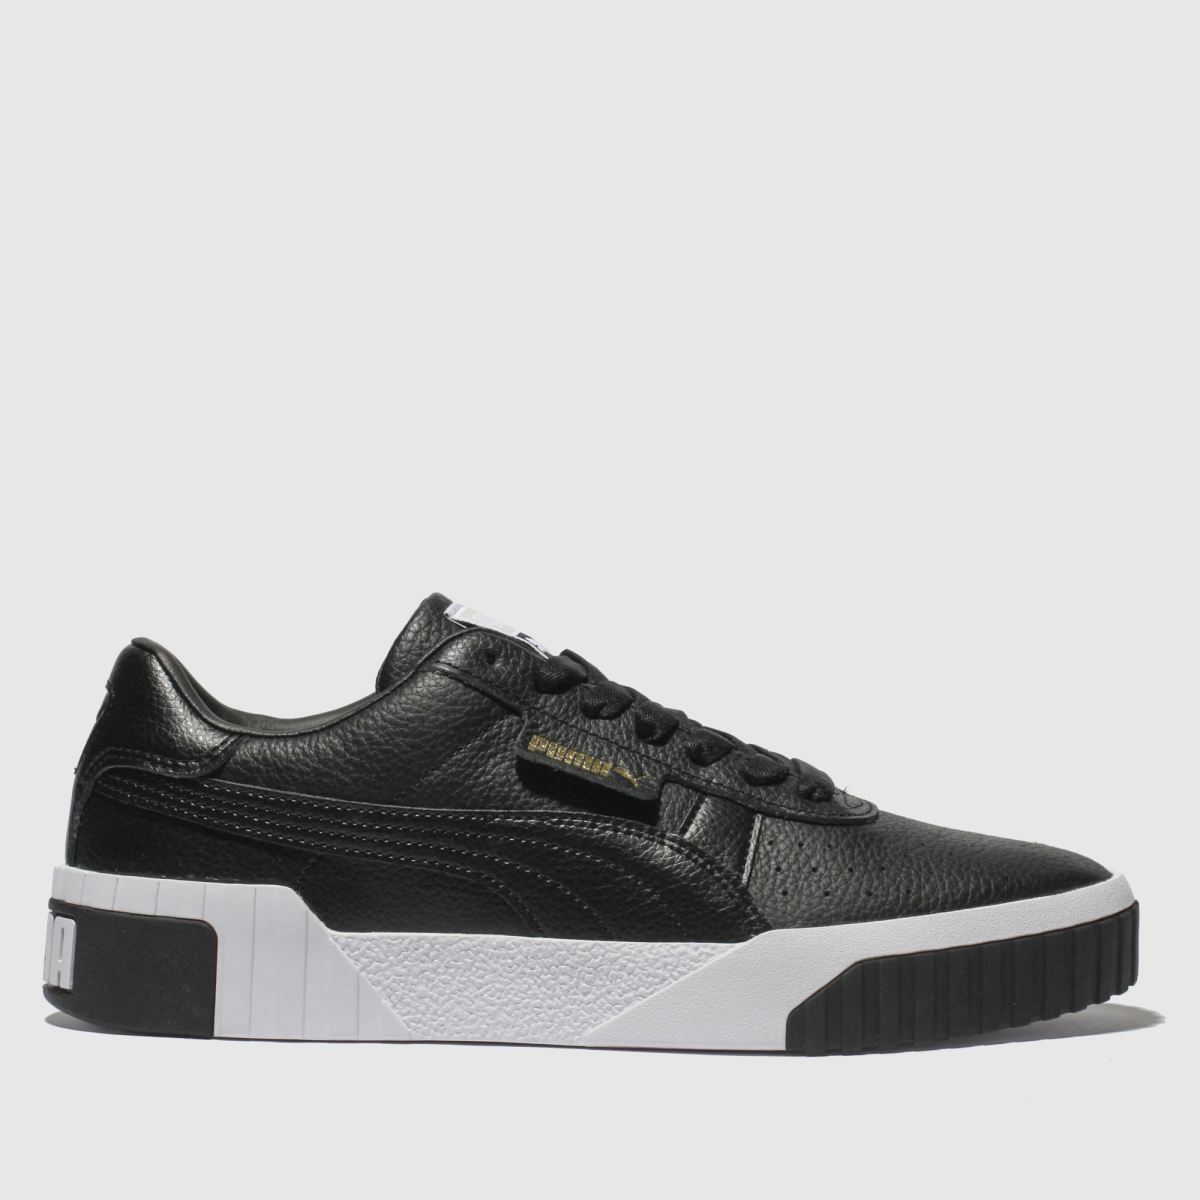 Puma Black & White Cali Leather Trainers